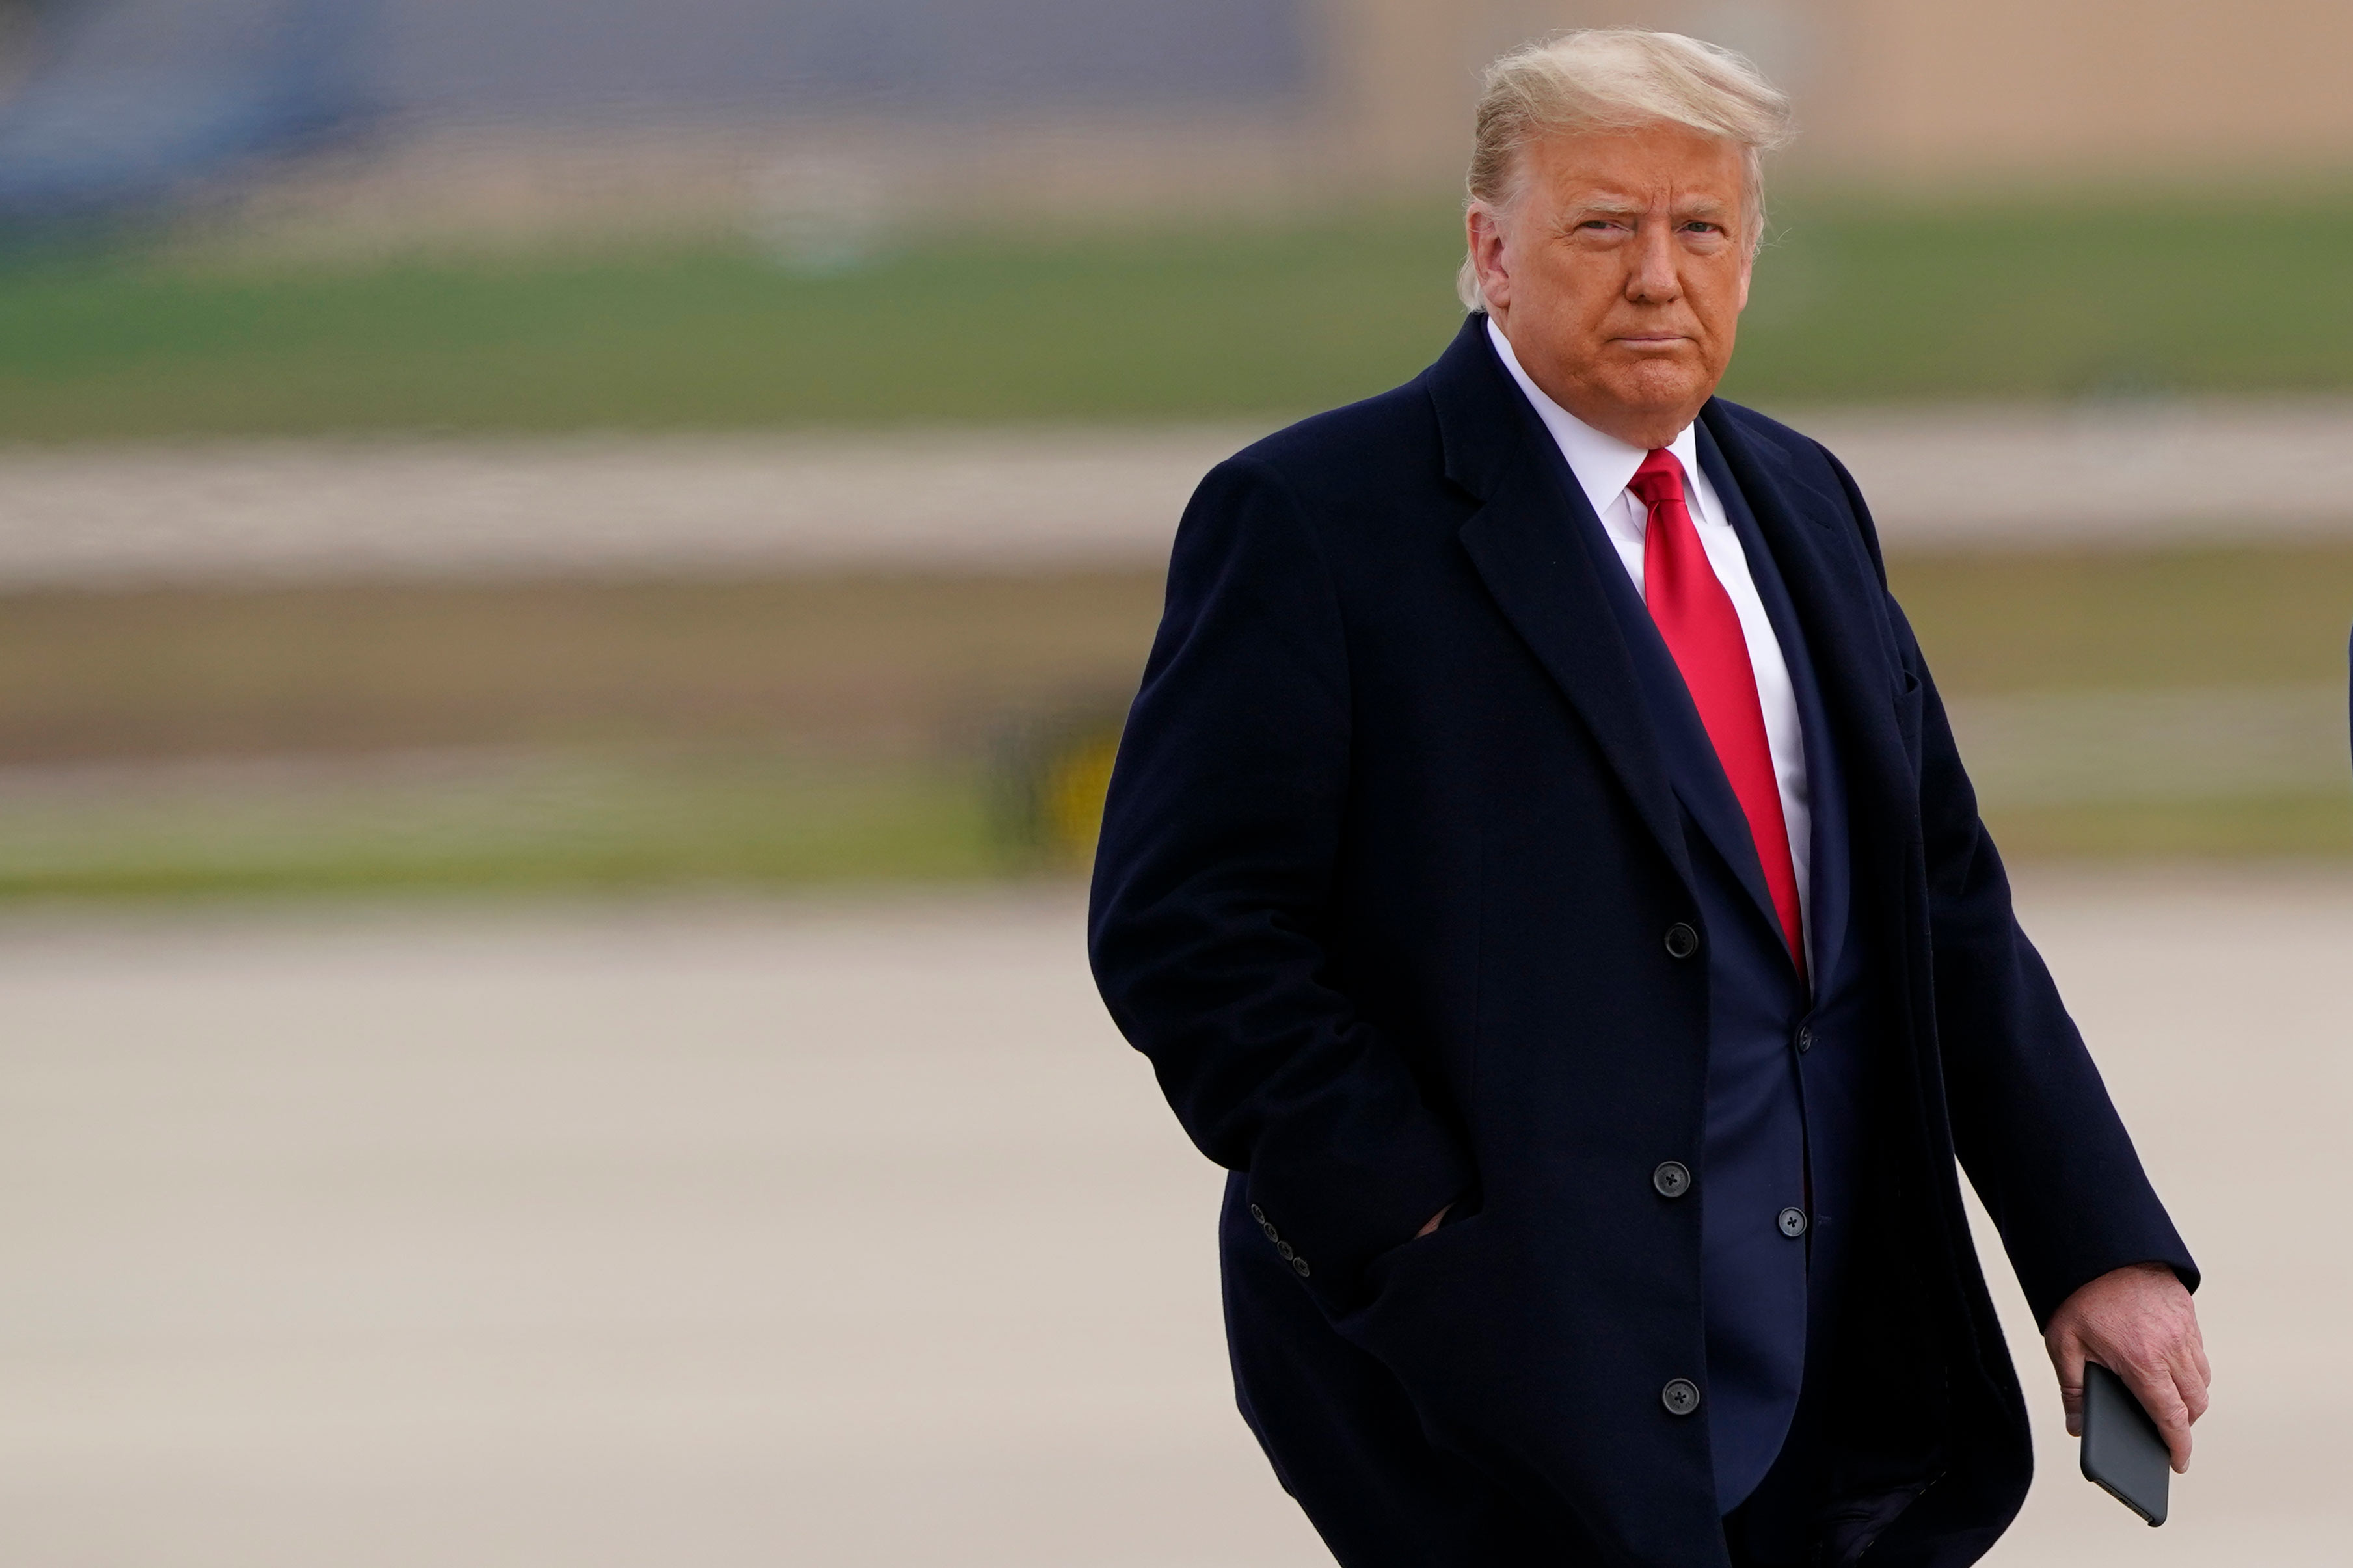 President Donald Trump walks towards Air Force One at Andrews Air Force Base, Maryland, on October 30.